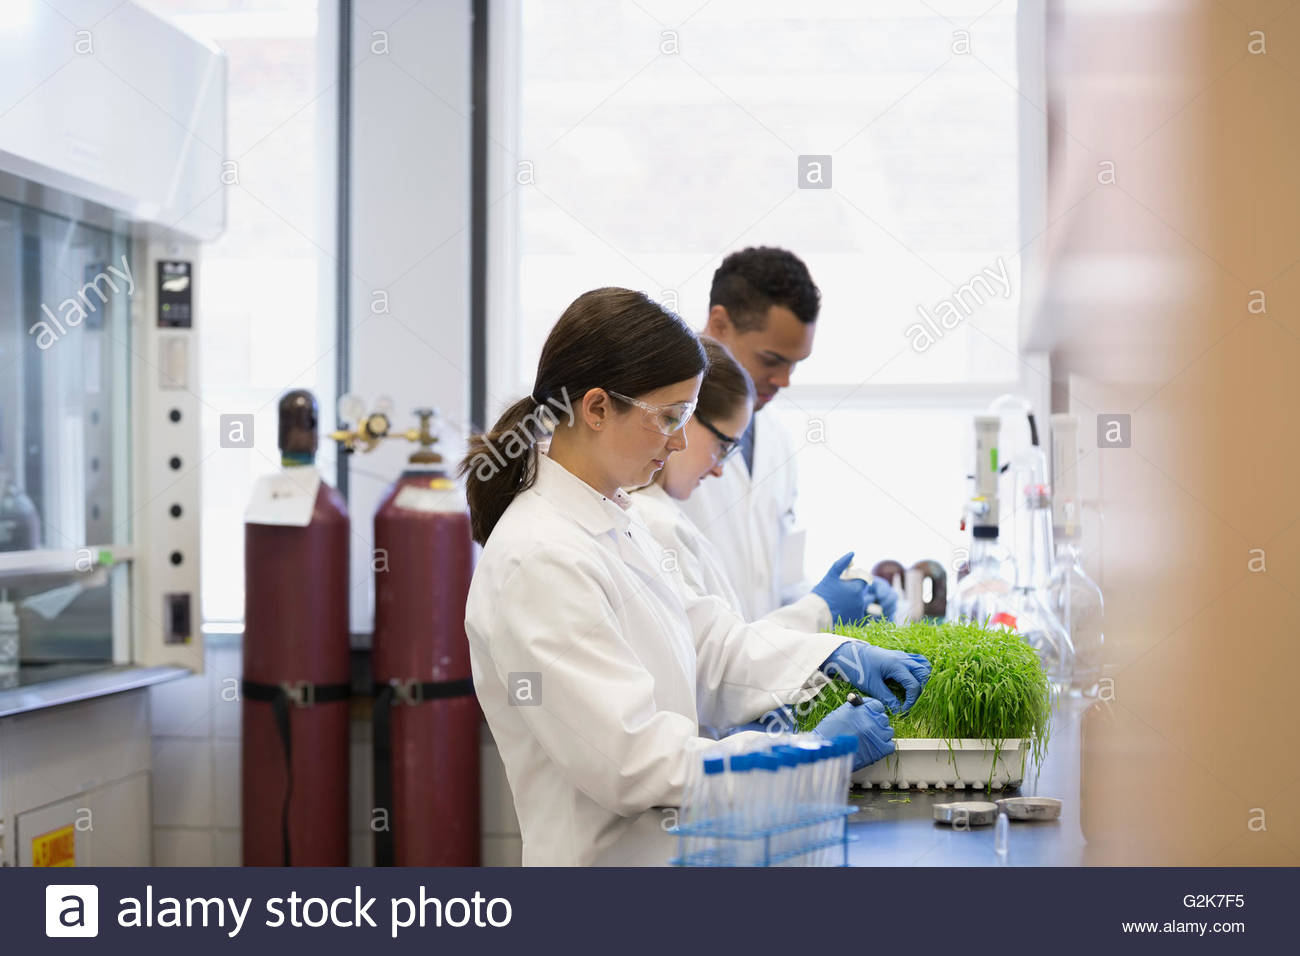 Scientists examining GMO plants in laboratory - Stock Image